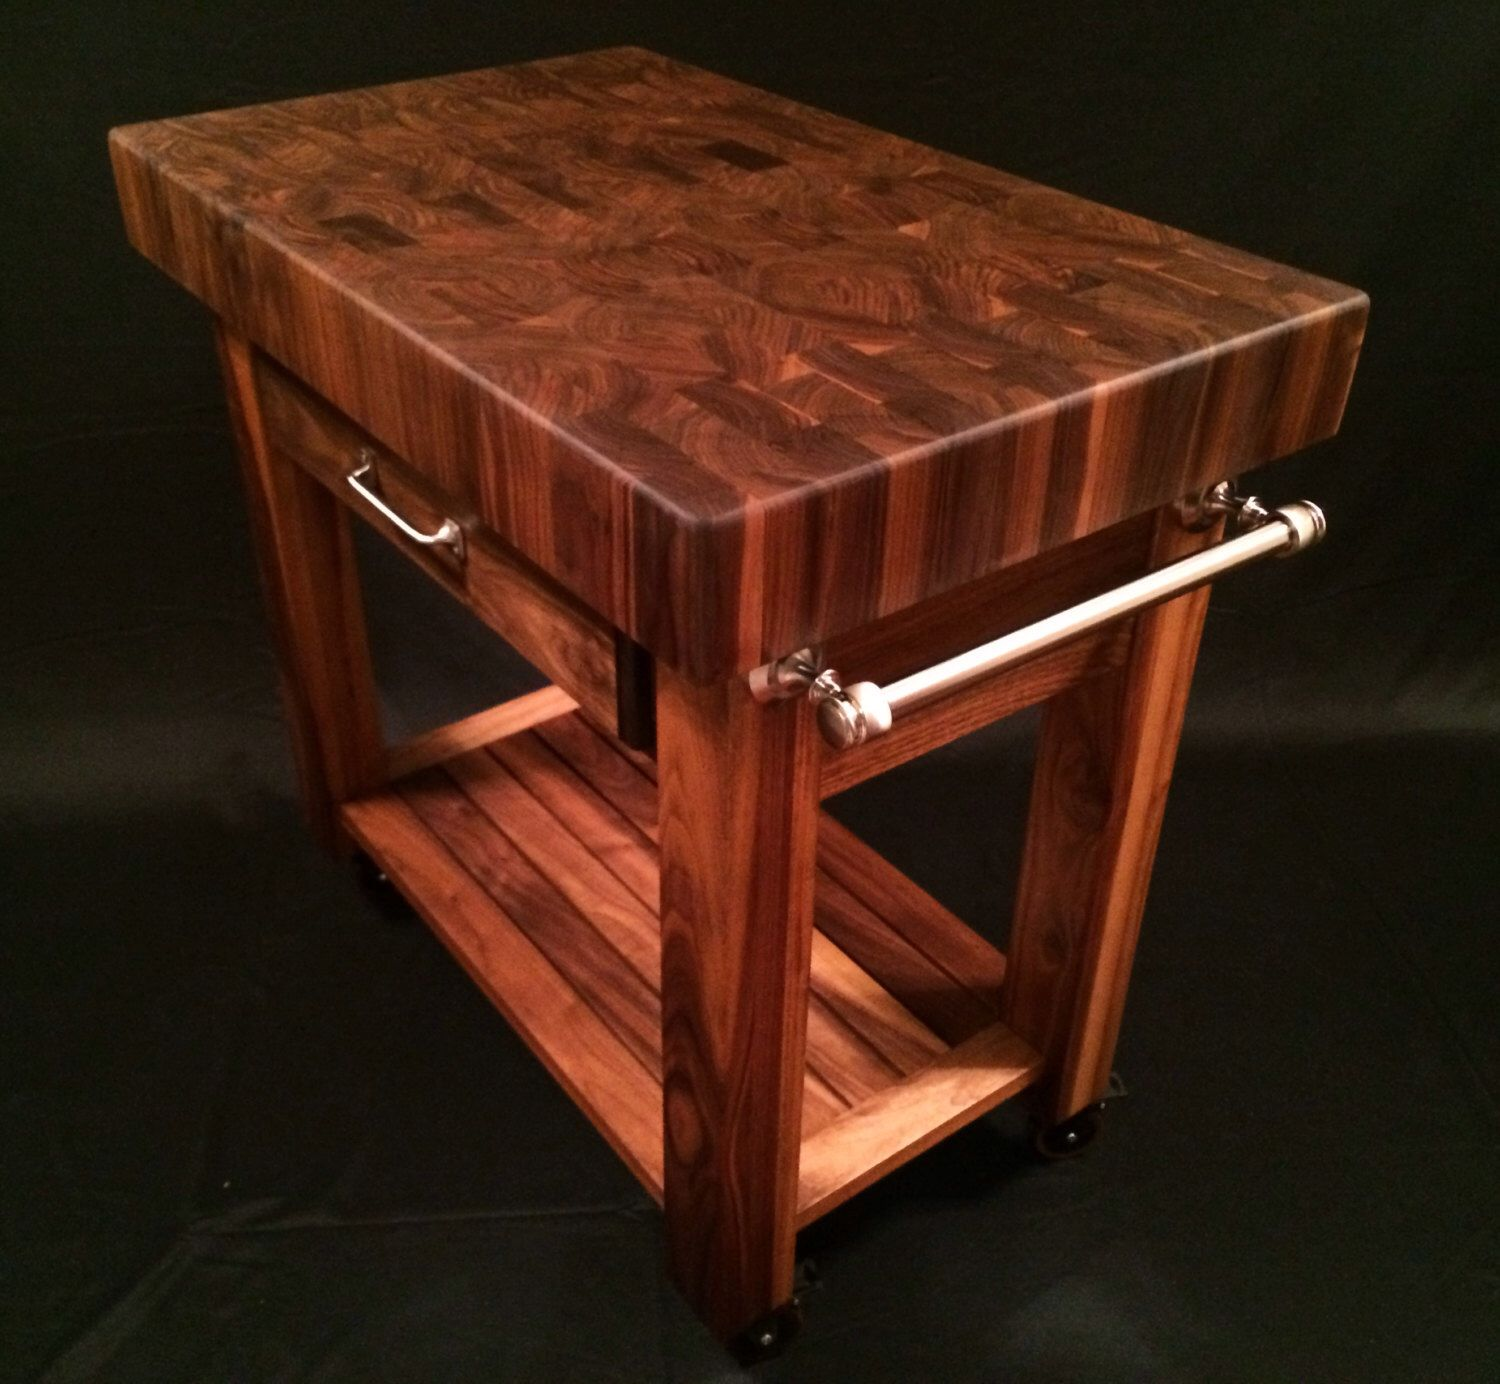 Beautiful Black Walnut End Grain Butcher Block Kitchen